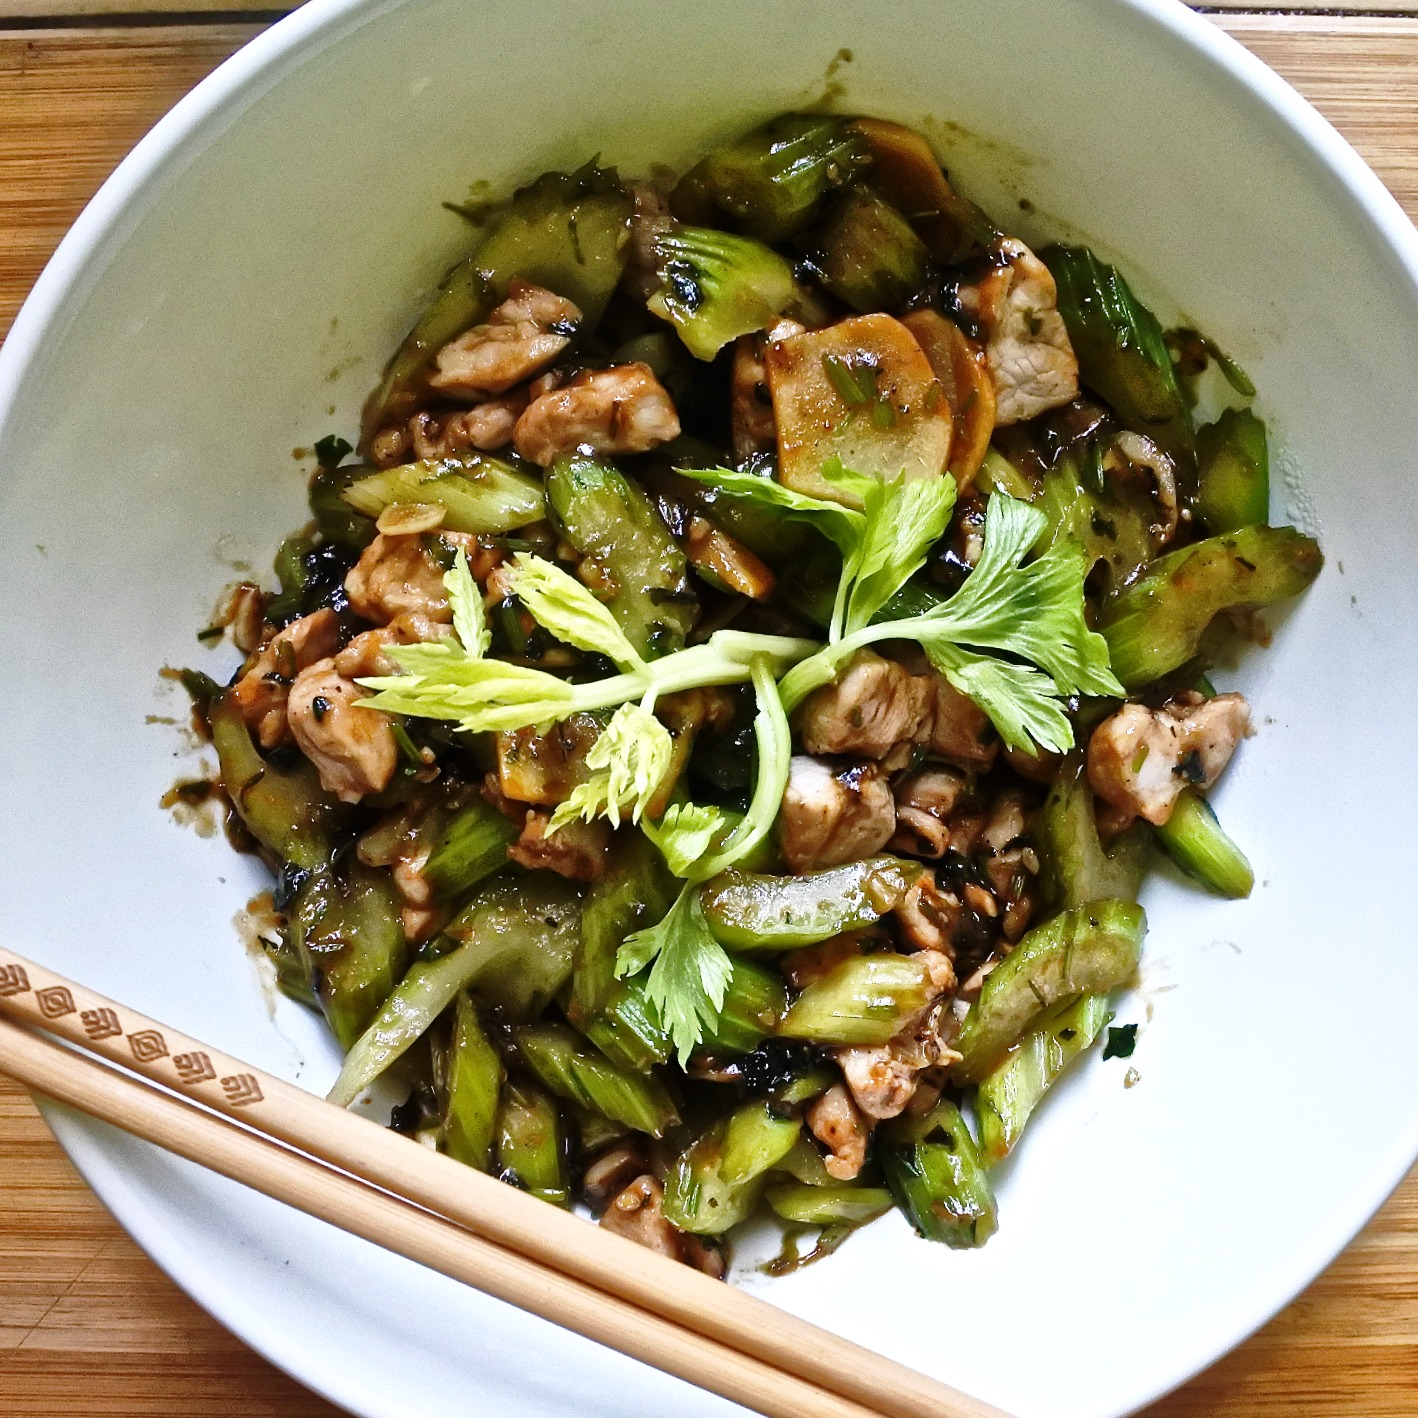 Pork and Celery Stir Fry